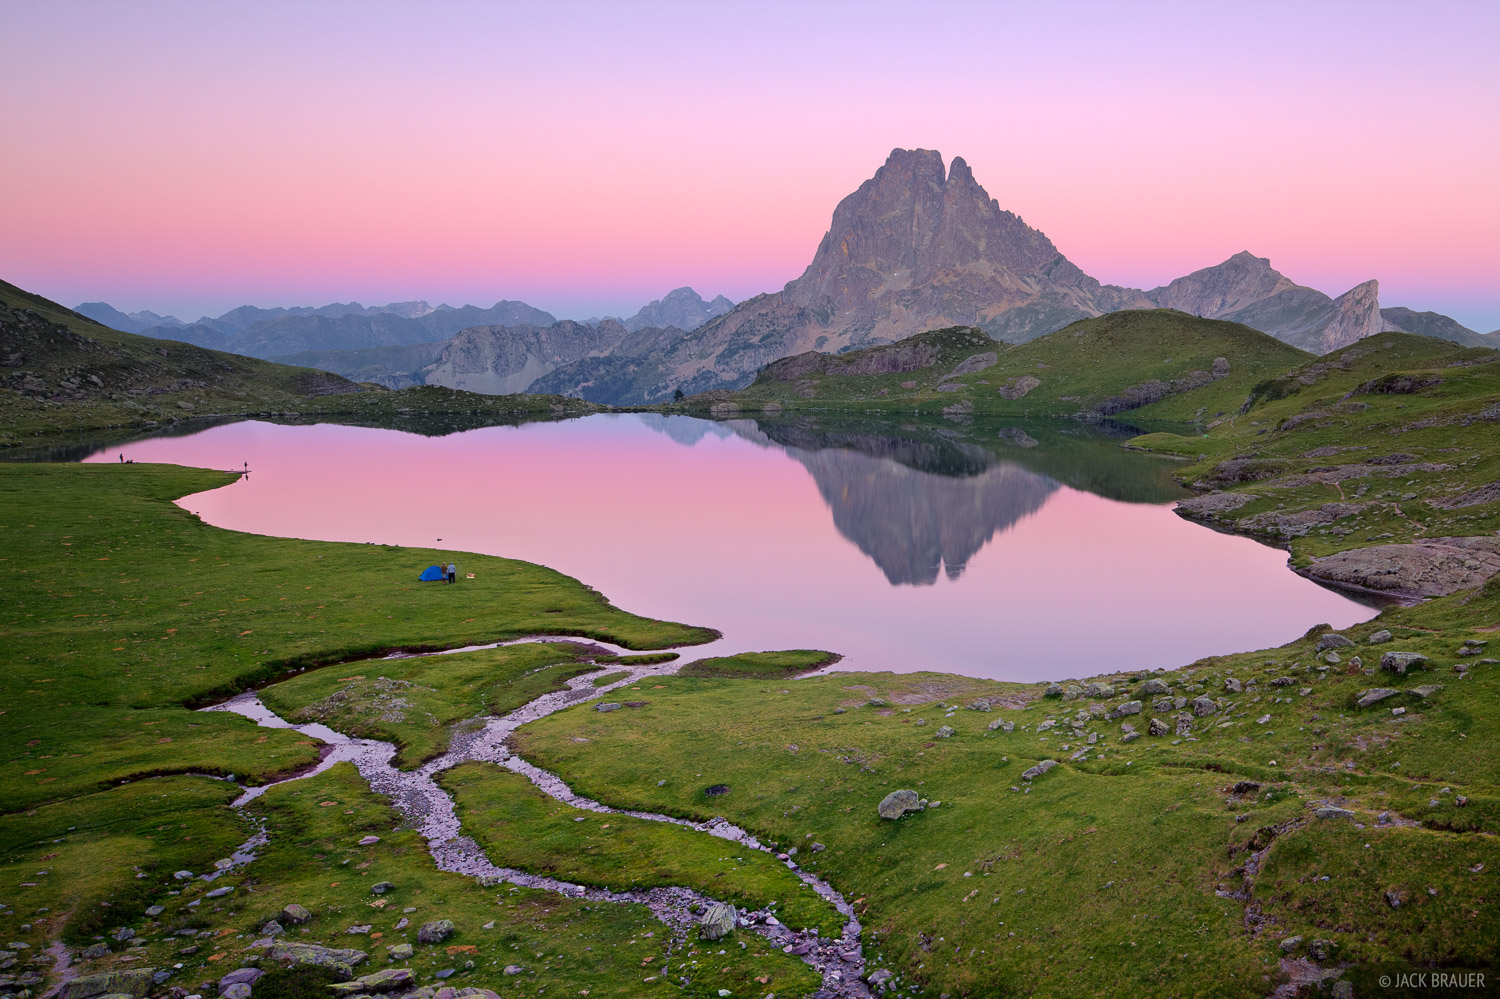 Pic du Midi d'Ossau. Lac Gentau, Refuge d'Ayous, Pyrenees, France, photo